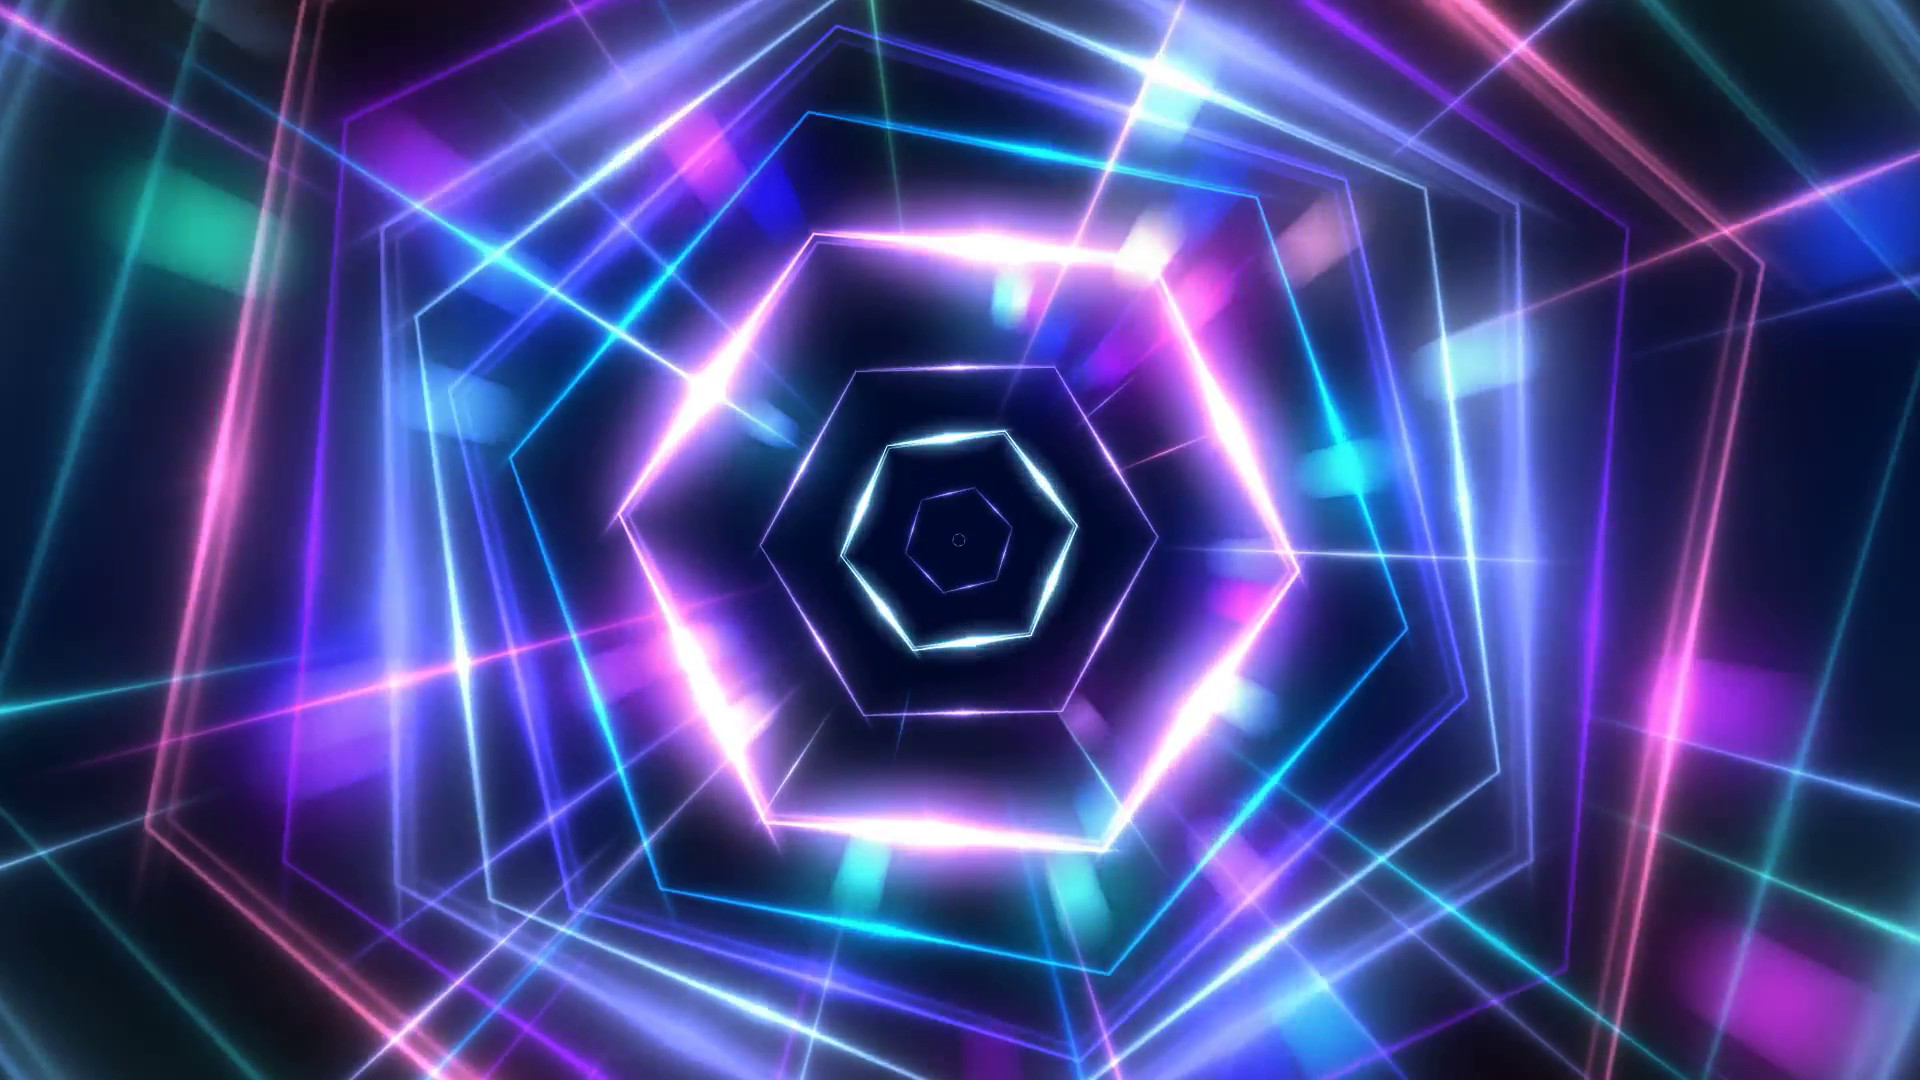 Neon Purple Backgrounds (56+ images)